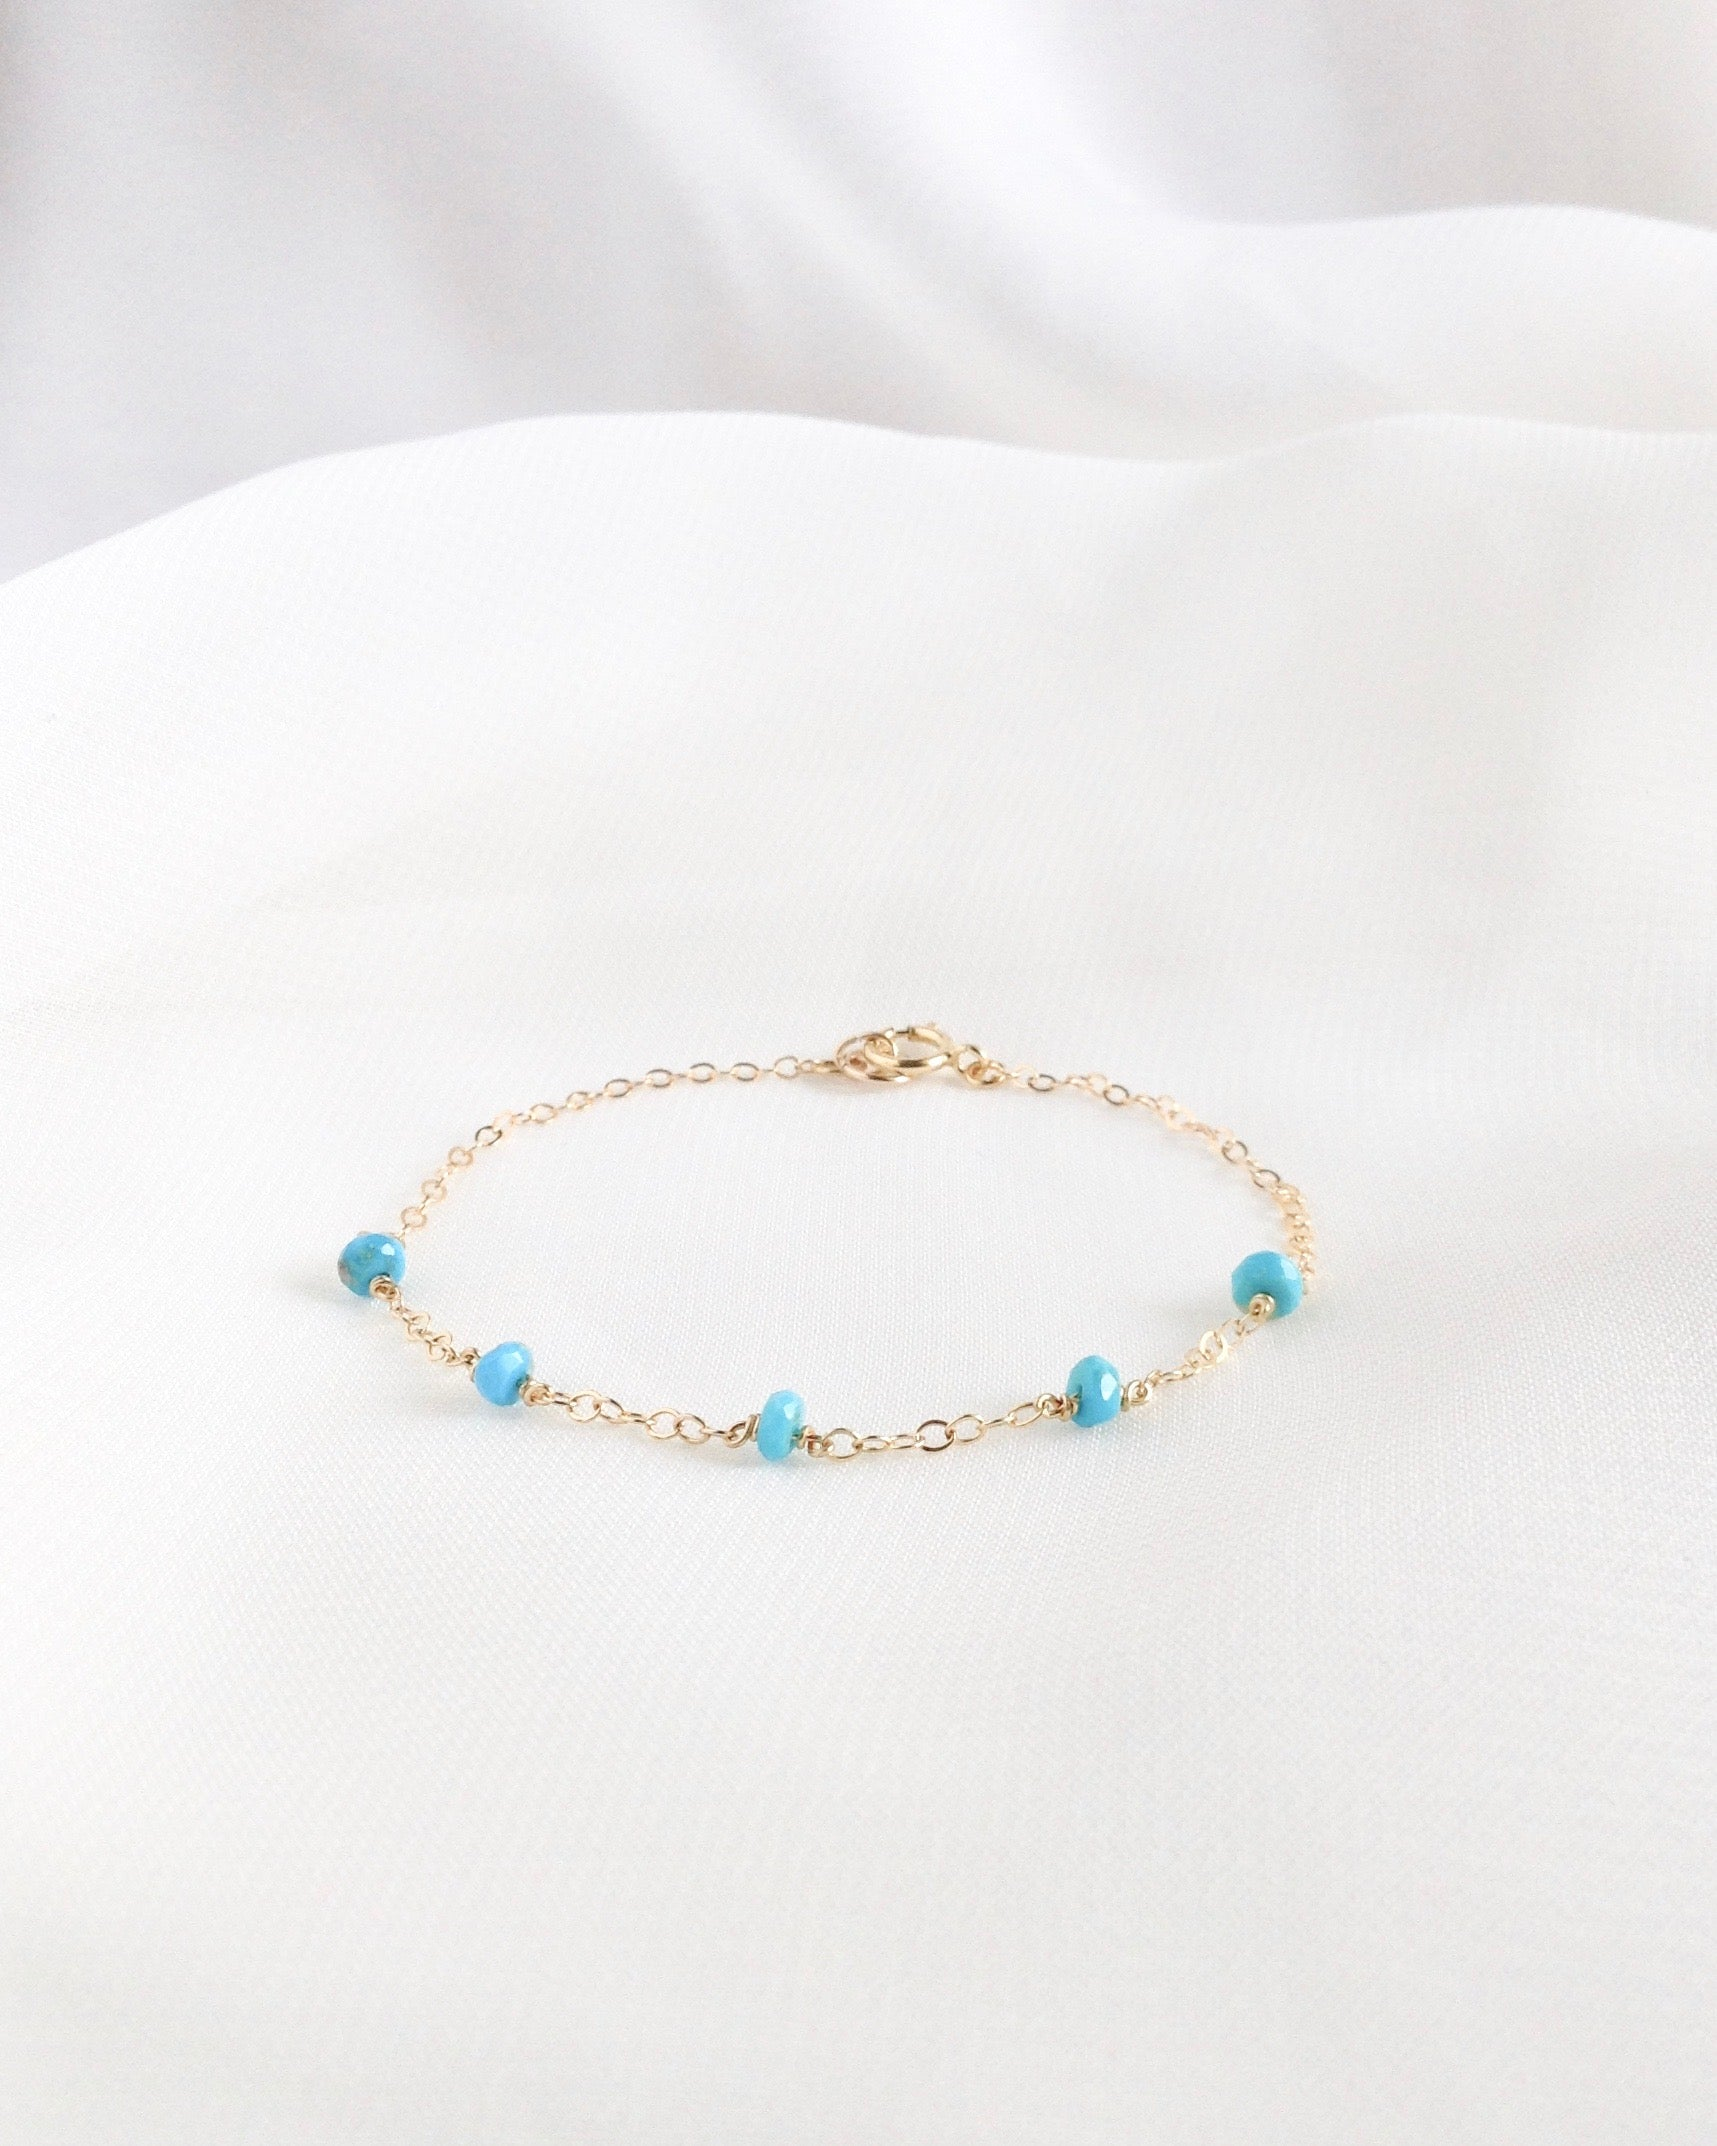 Sleeping Beauty Turquoise Bracelet in Gold Filled or Sterling Silver | IB Jewelry